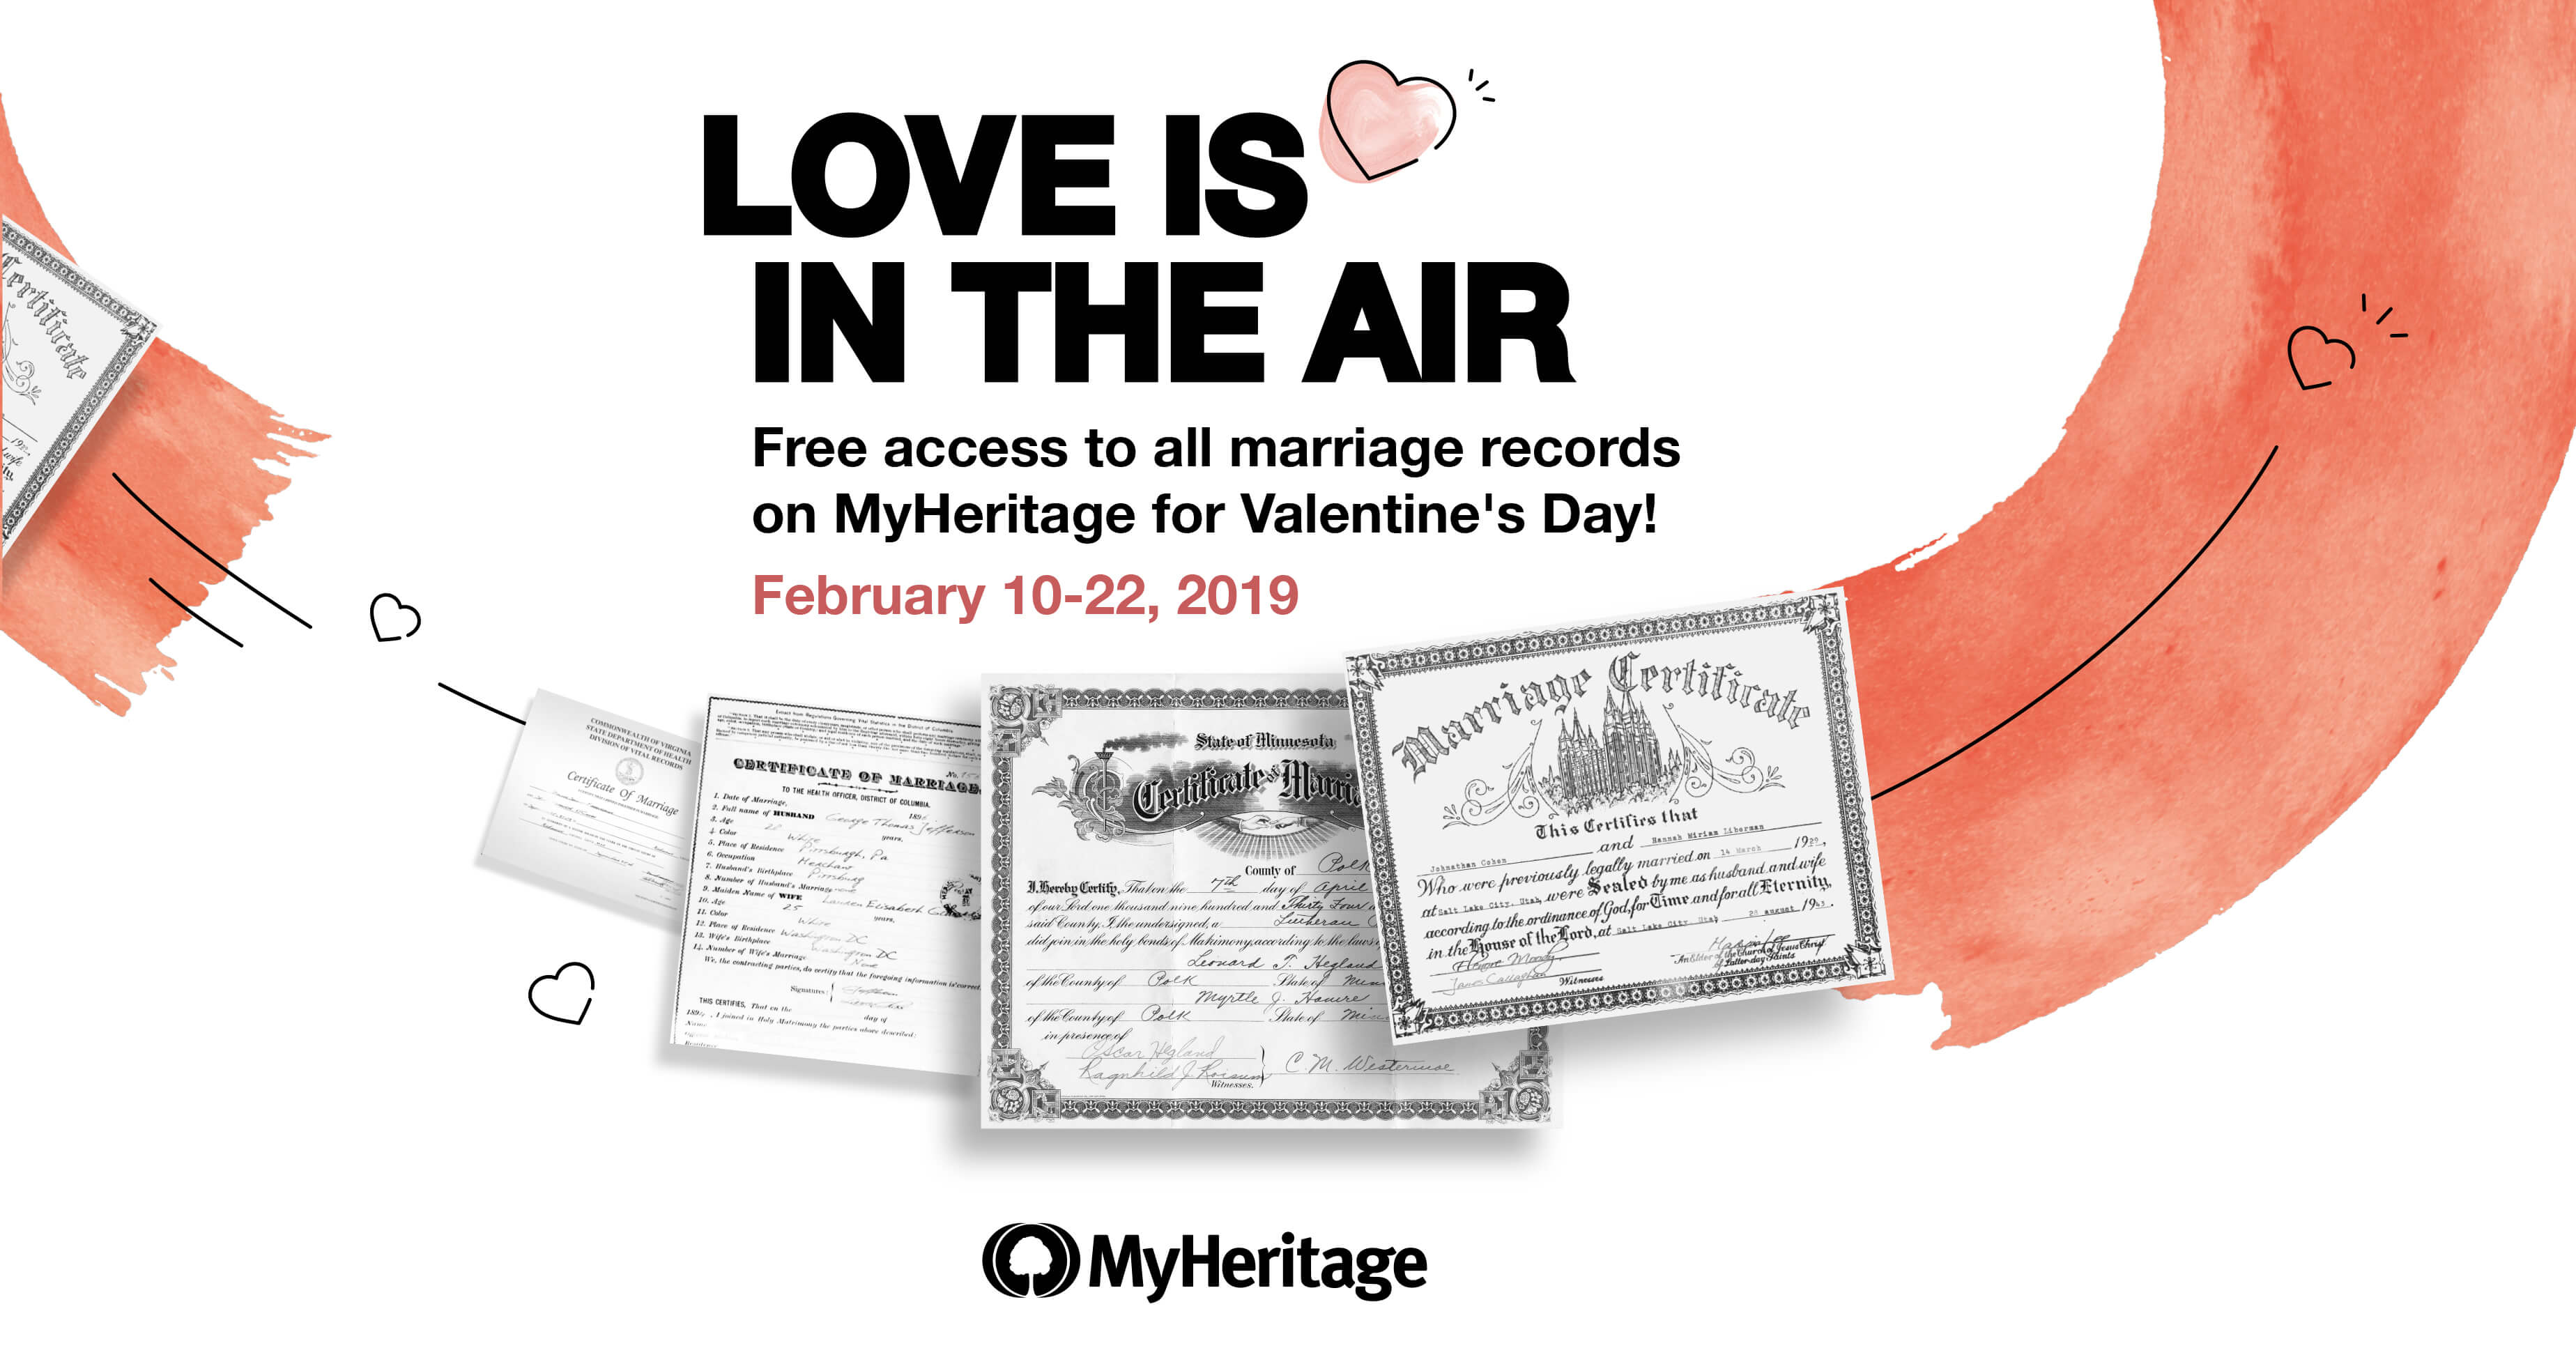 Free Marriage Records for Valentine's Day! - MyHeritage Blog